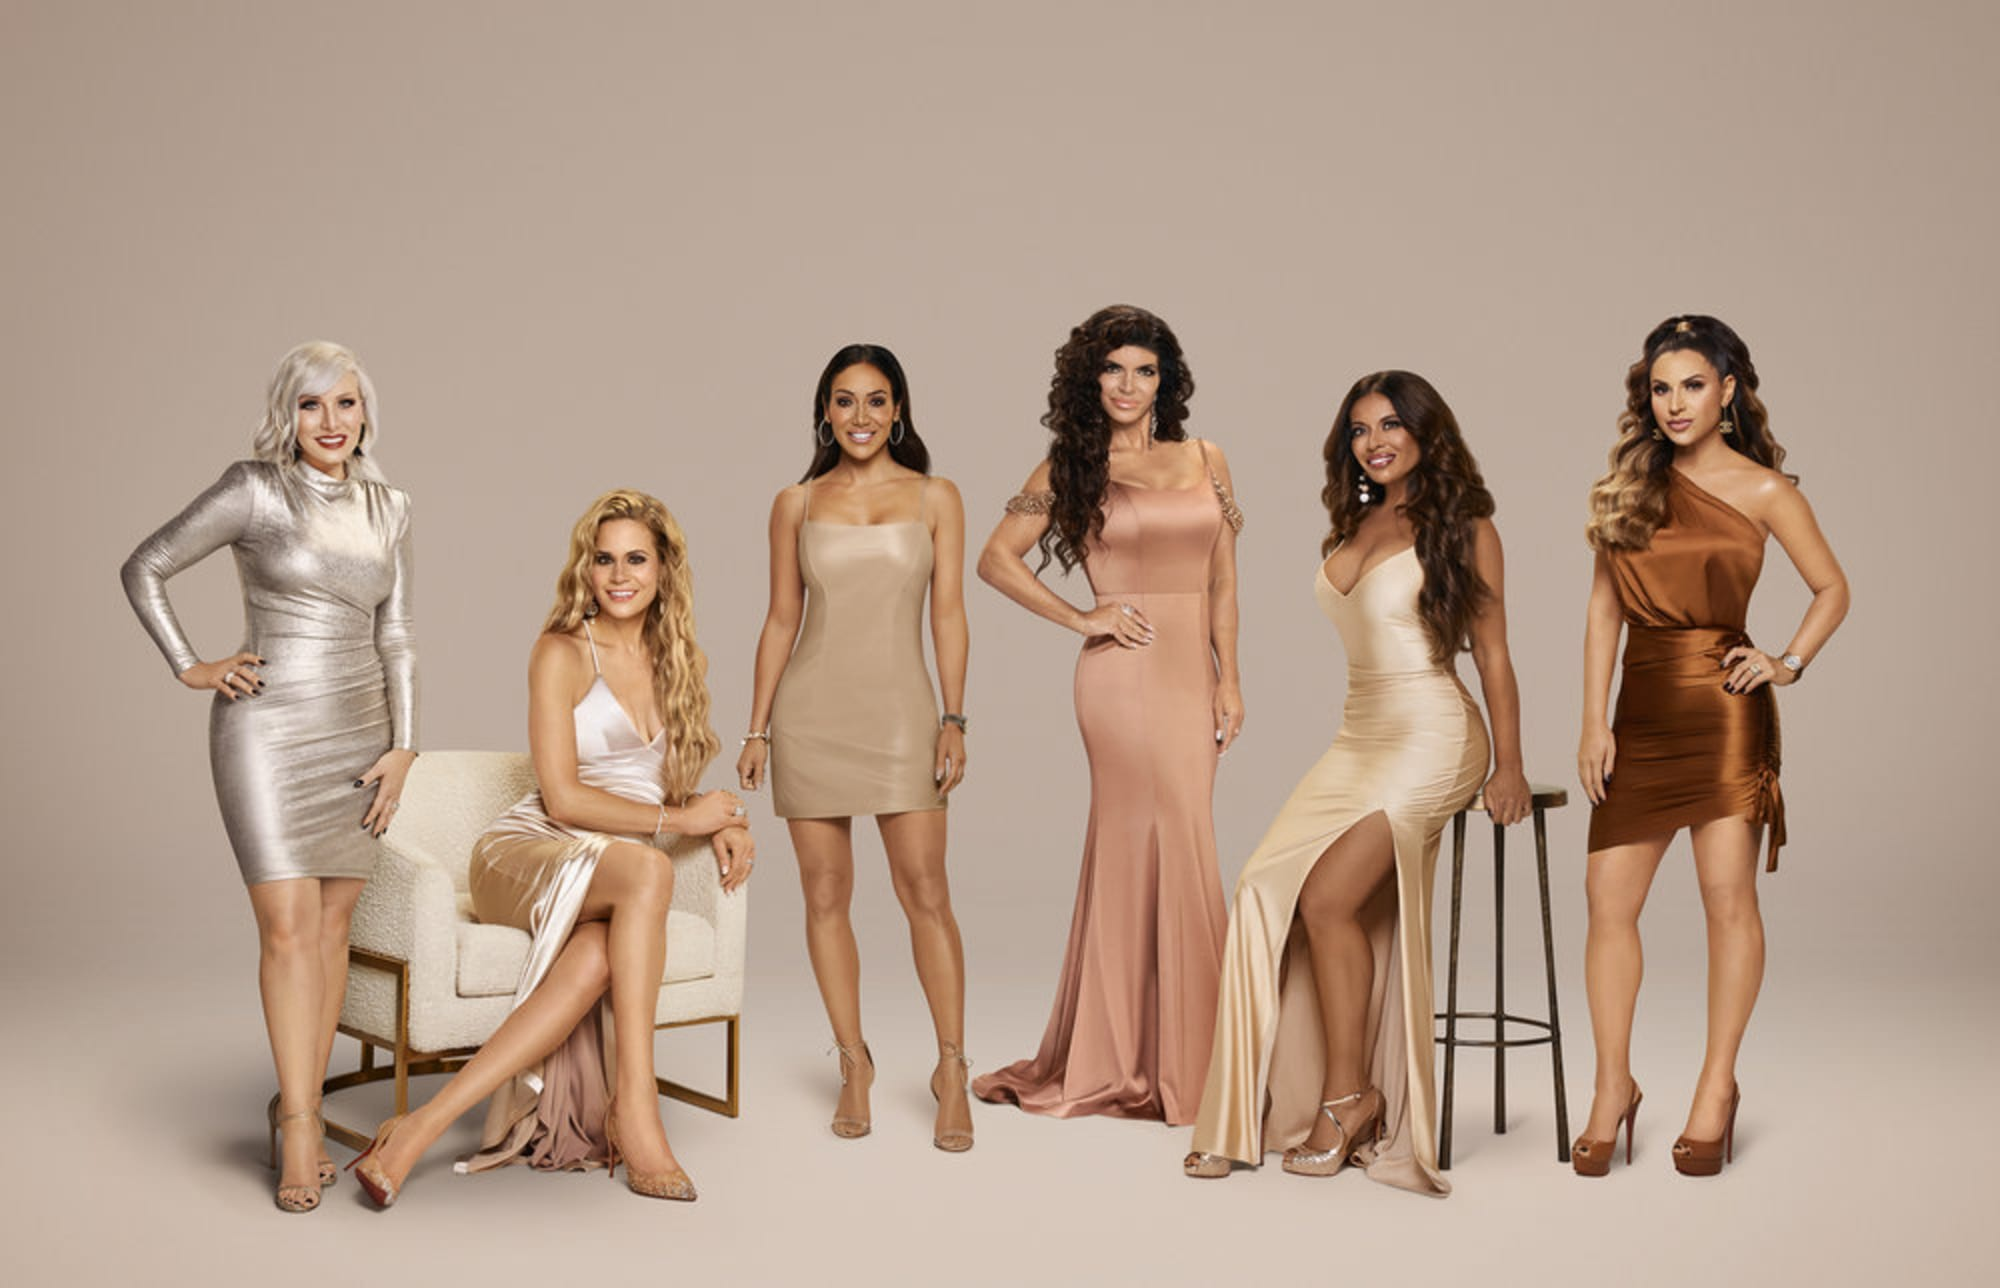 How to watch Real Housewives of New Jersey Season 11, Episode 9